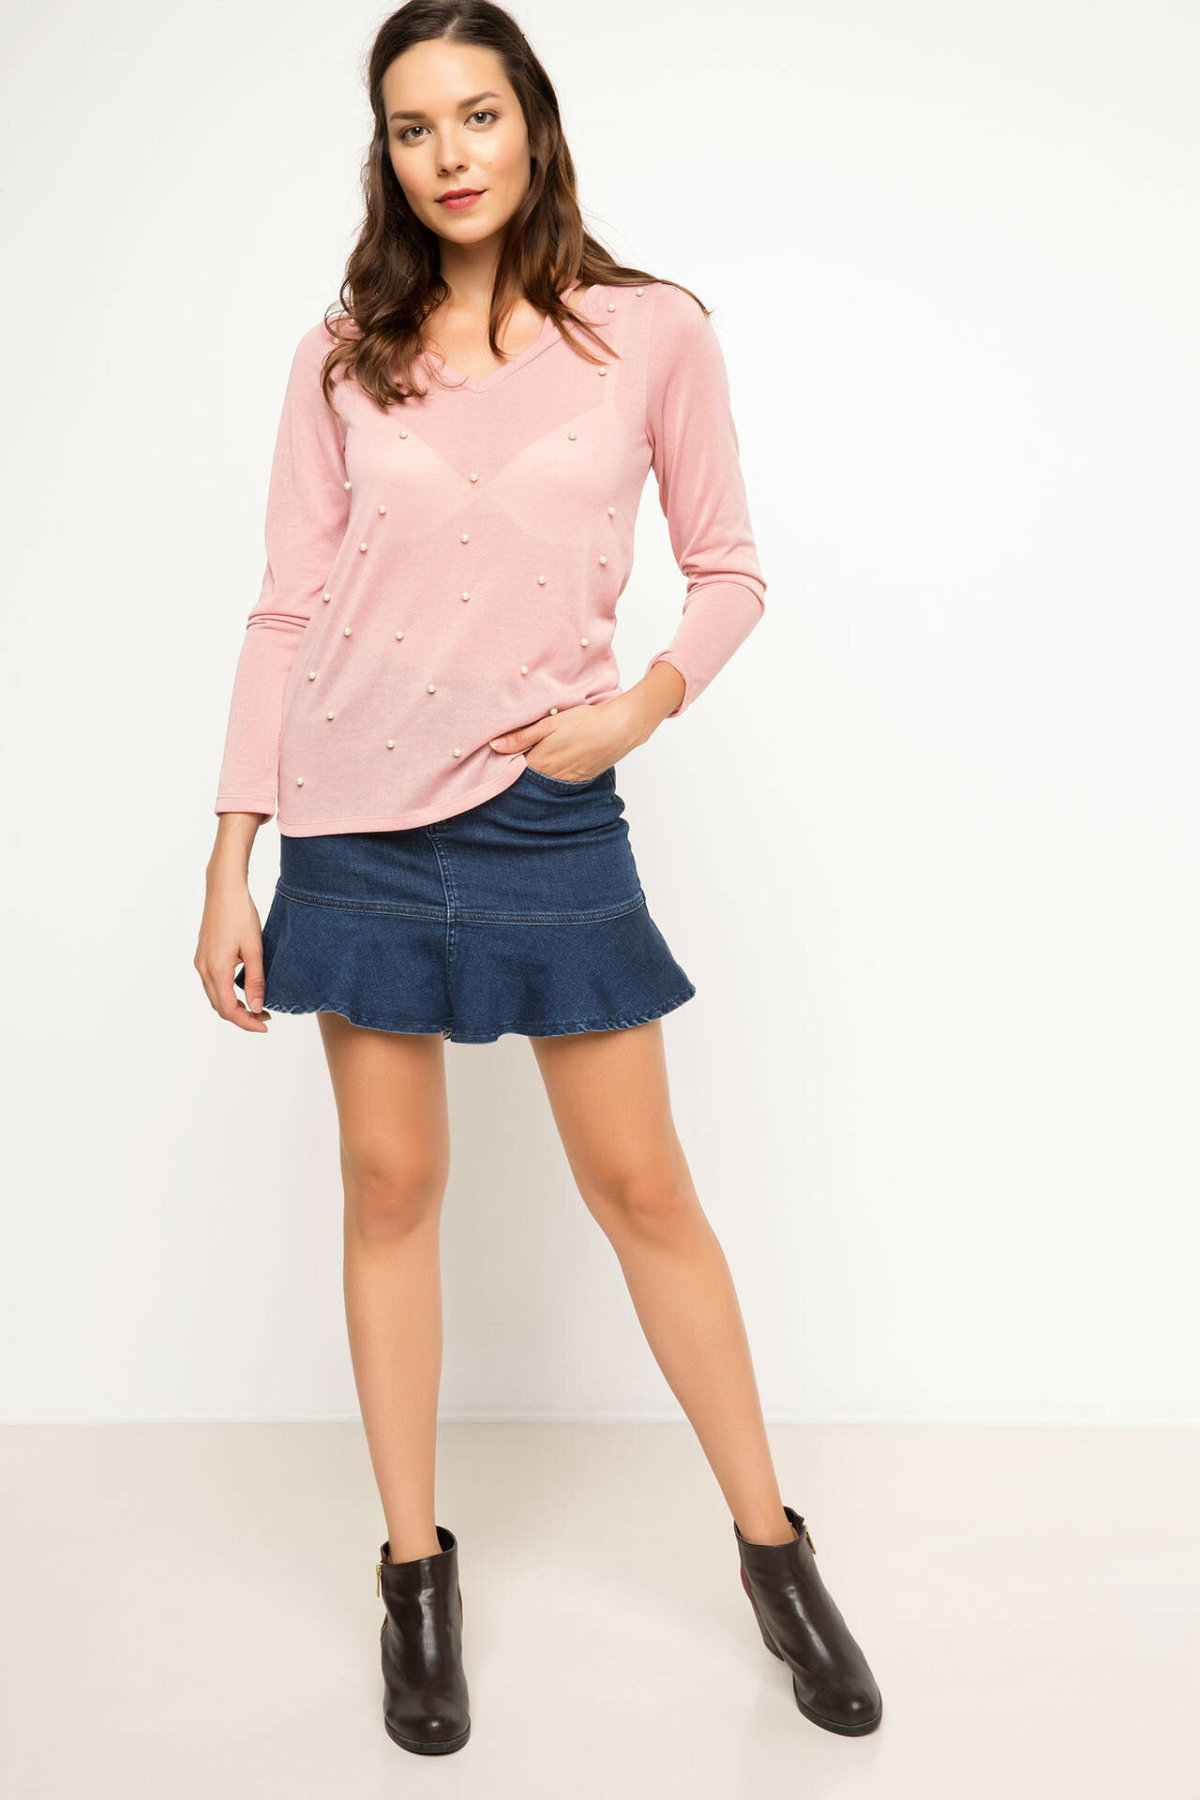 DeFacto Blue Women Ruffles <font><b>Denim</b></font> <font><b>Skirt</b></font> Casual <font><b>High</b></font>-<font><b>Waist</b></font> Solid Color Simple <font><b>Jeans</b></font> Short <font><b>Skirt</b></font> Fashion -I2397AZ17AU-I2397AZ17AU image